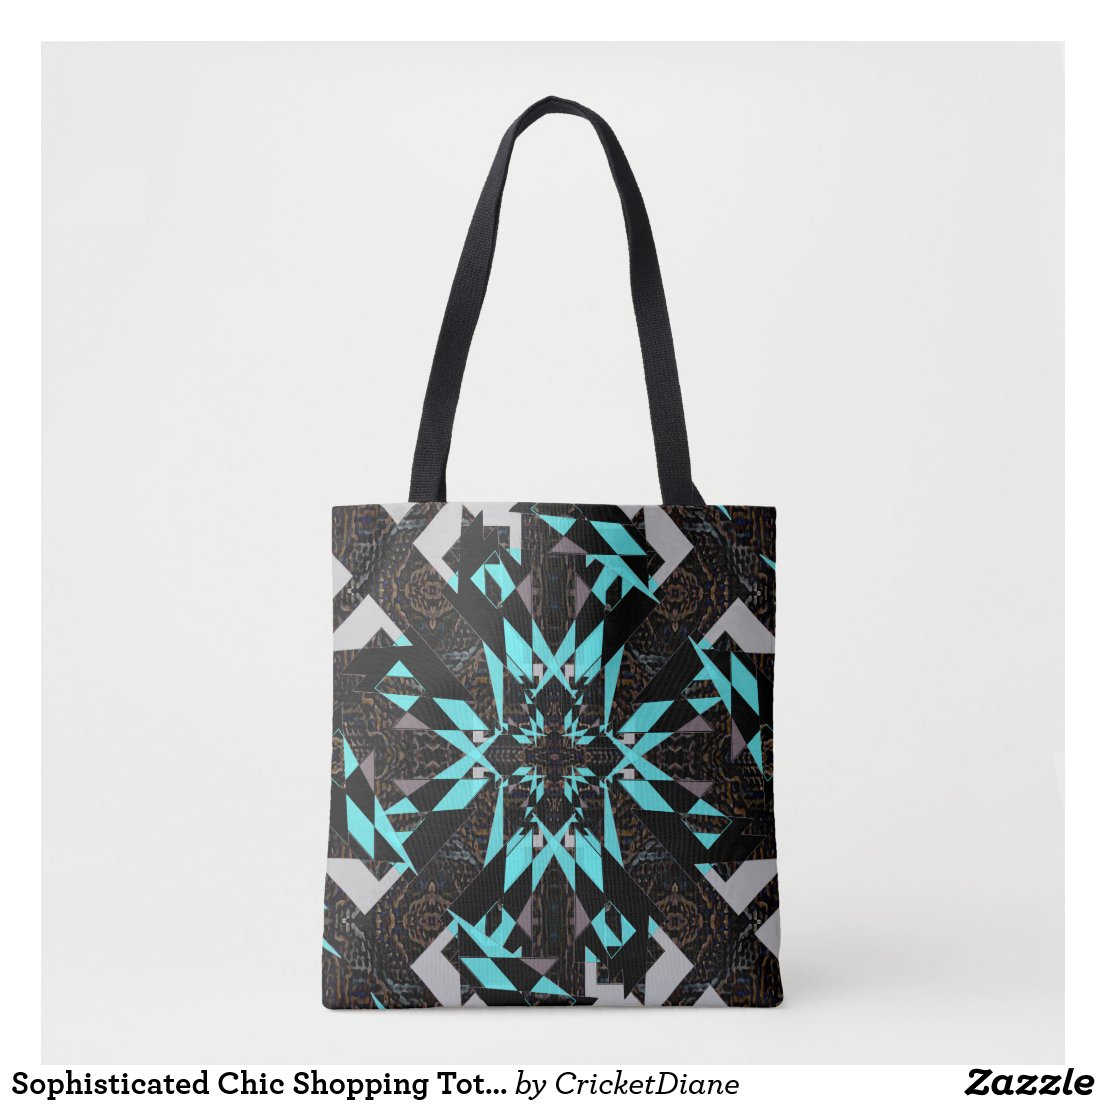 Sophisticated Chic Shopping Tote Bag